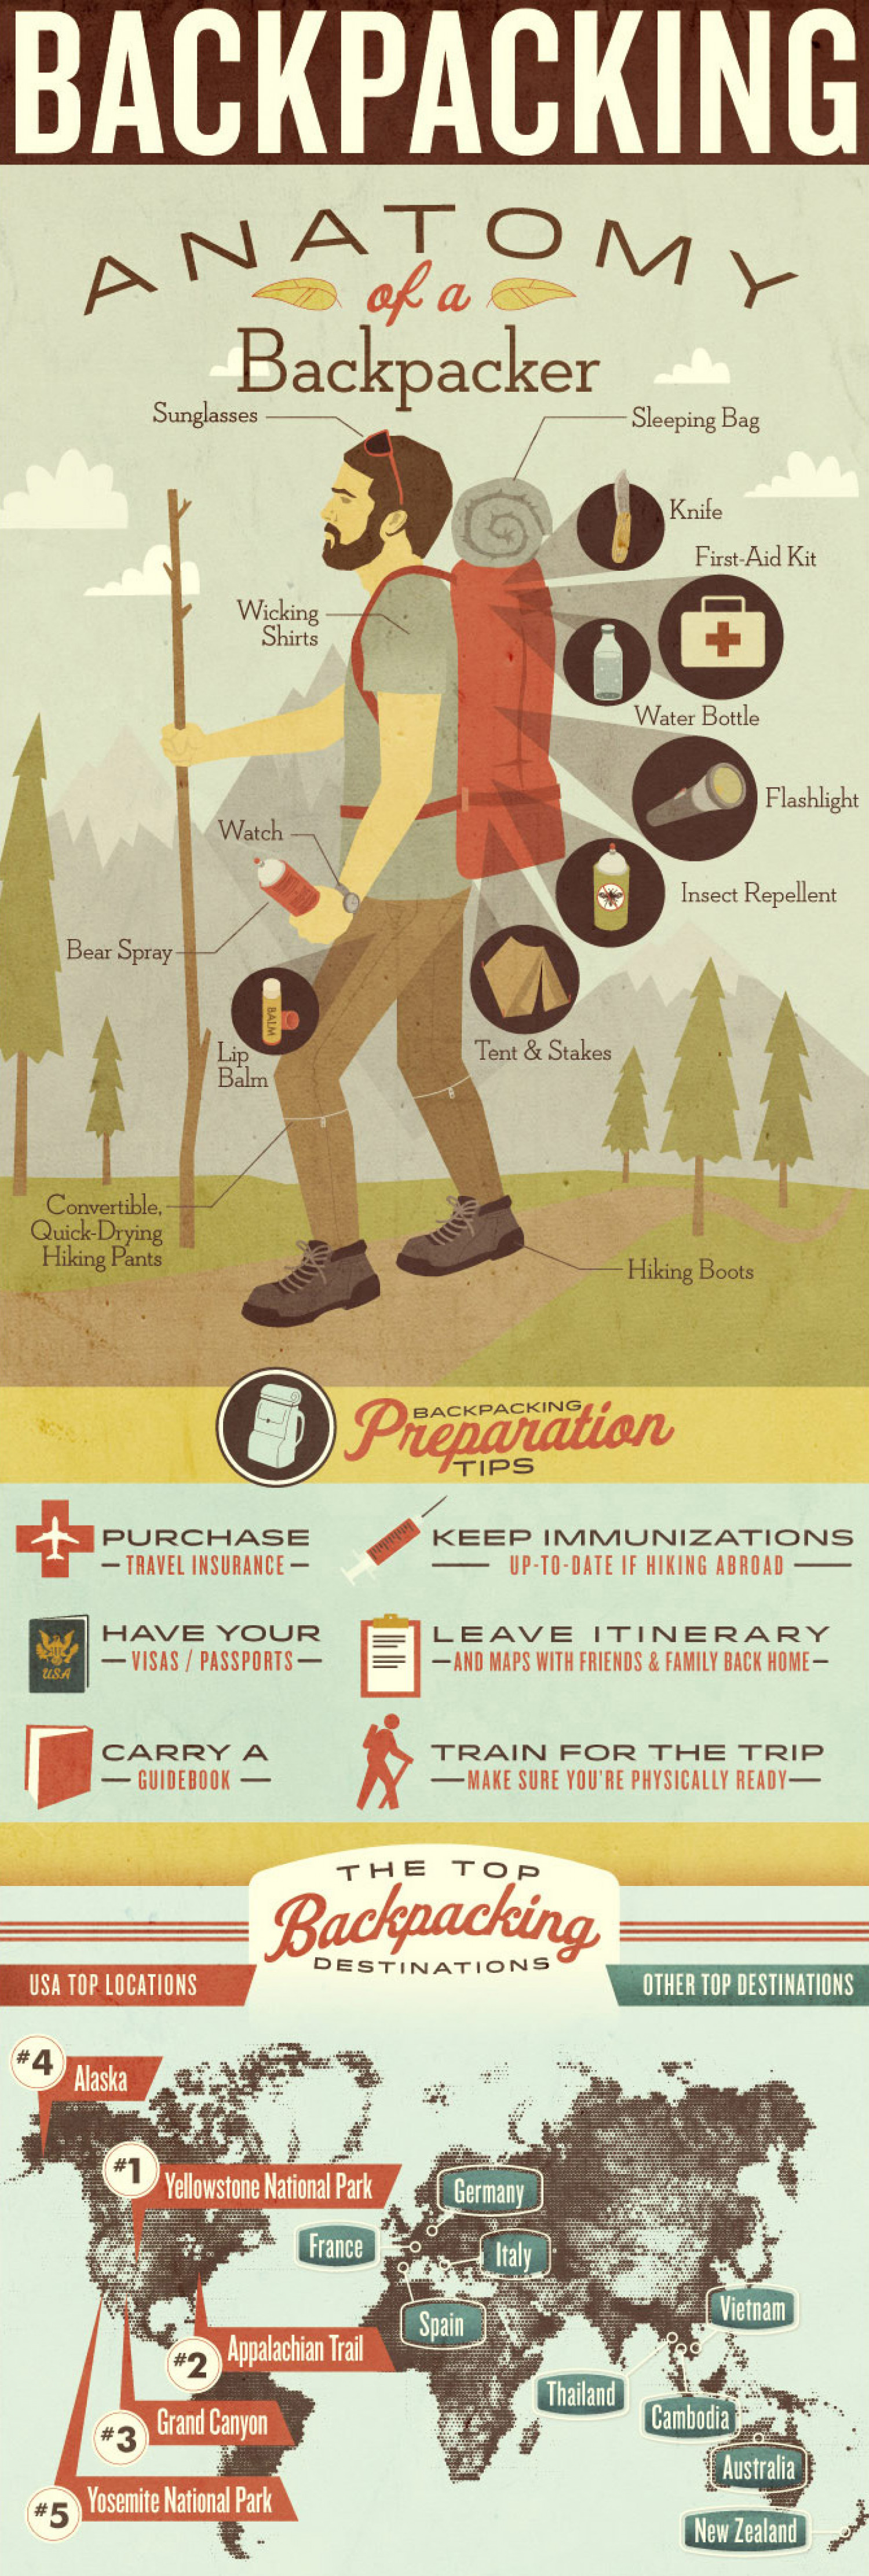 BACKPACKING Infographic